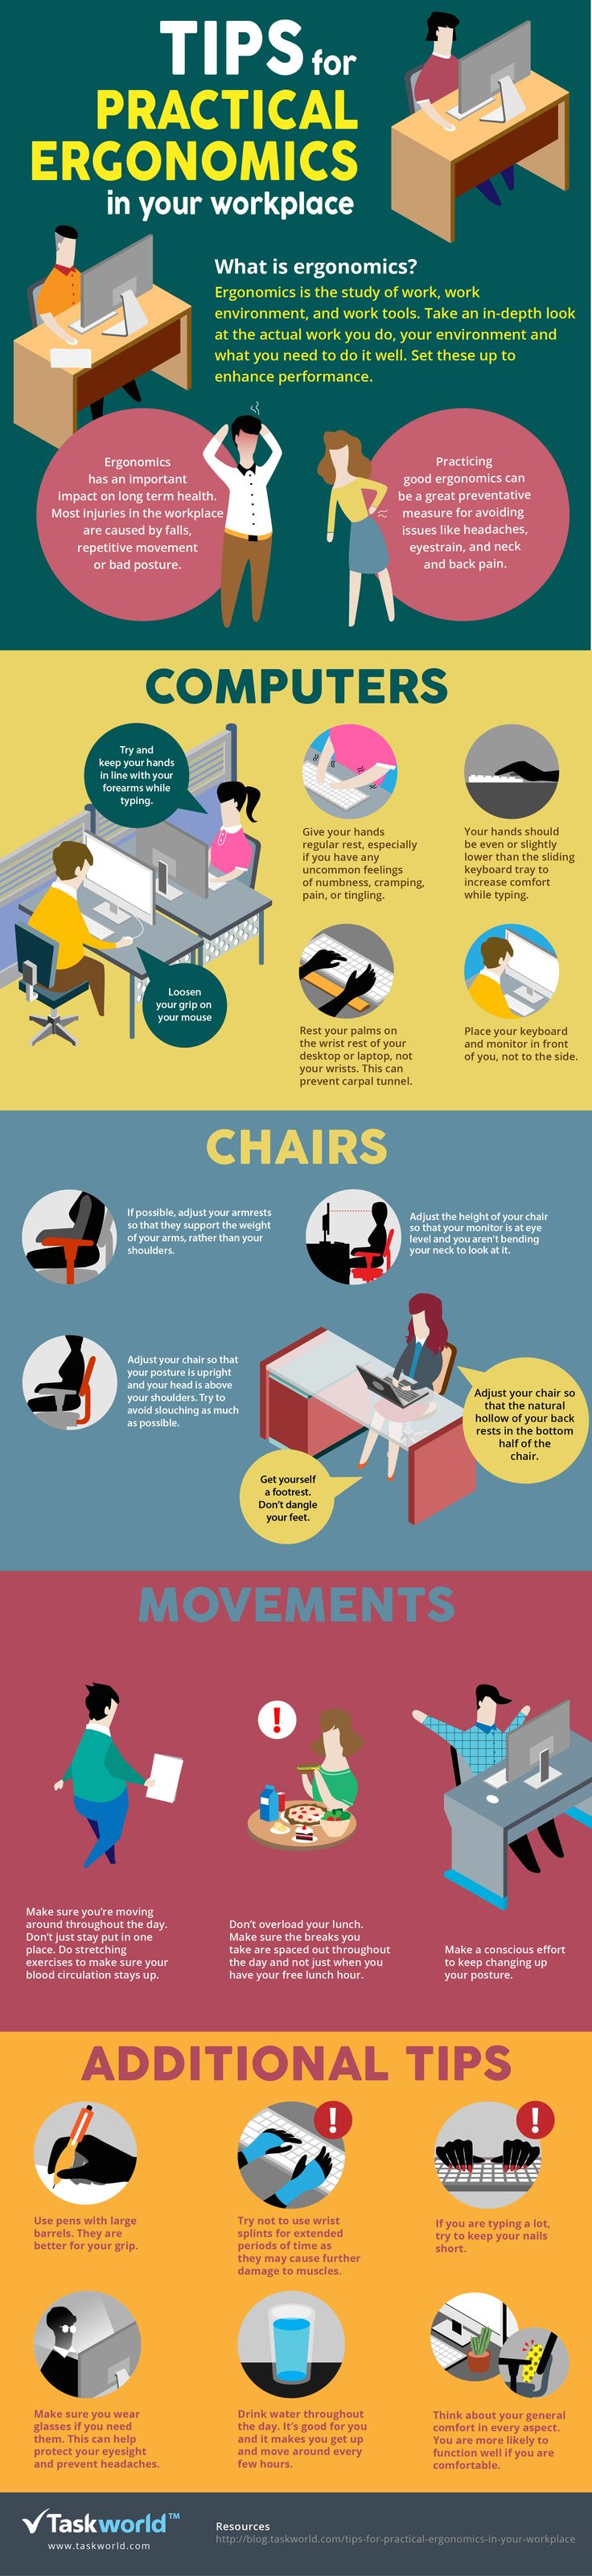 Visualistan: Tips For Practical Ergonomics In Your Workplace #infographic #ergonomics